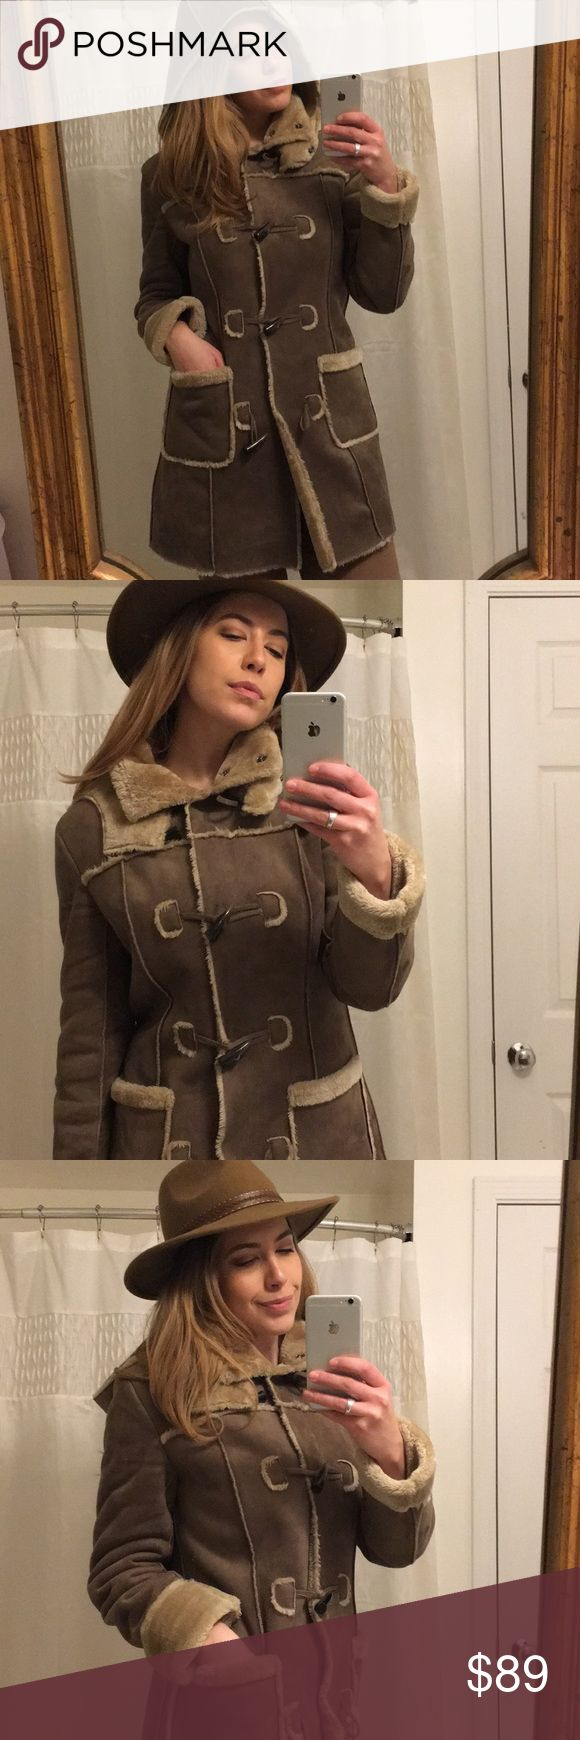 """Hive & Honey Faux Shearling Coat in Latte Worn twice! And each time I was stopped and asked where I got this faux fur! It gives you all the look of a suede and fur shearling coat with none of the cruelty and all the beautiful creamy color! Amazing button details (hidden snaps as well). Removable hood. Pockets!! And if you really need to bundle up, you can (see the last pic). Comes to my mid thigh (I'm 5' 8""""). Polyester. Size: M. Hive & Honey Jackets & Coats"""